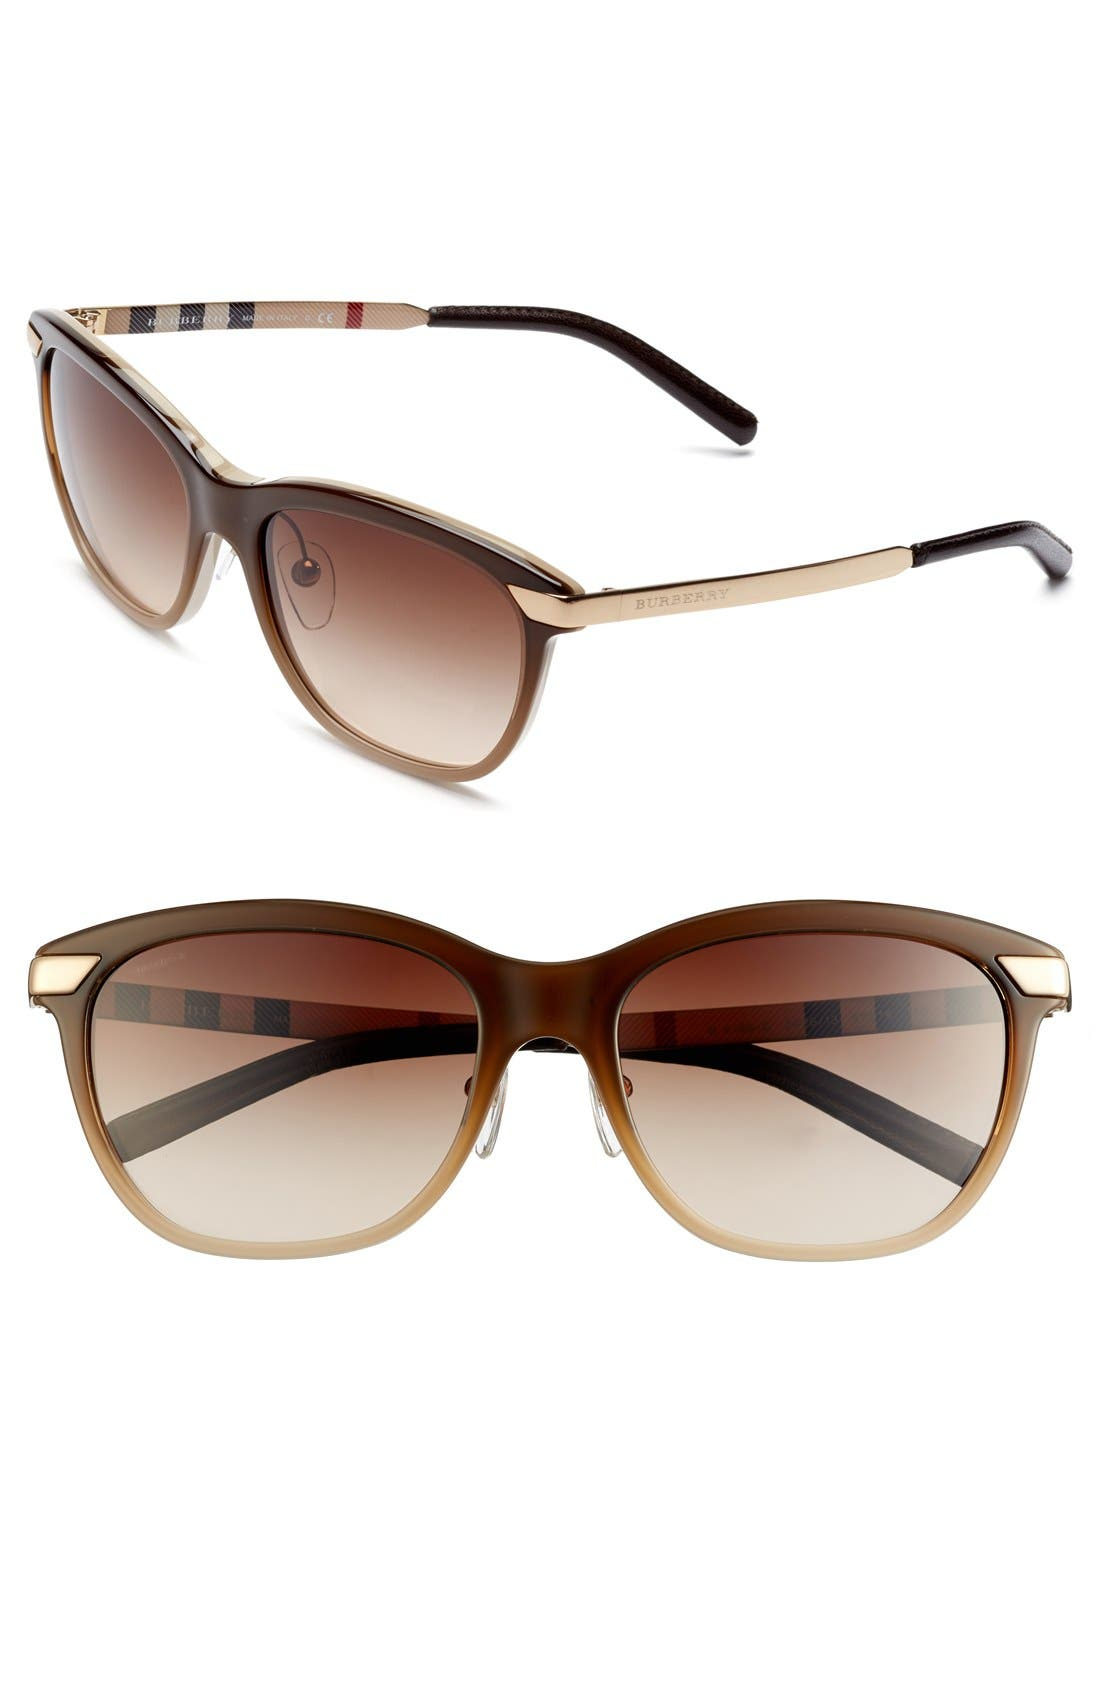 Alternate Image 1 Selected - Burberry 57mm Sunglasses